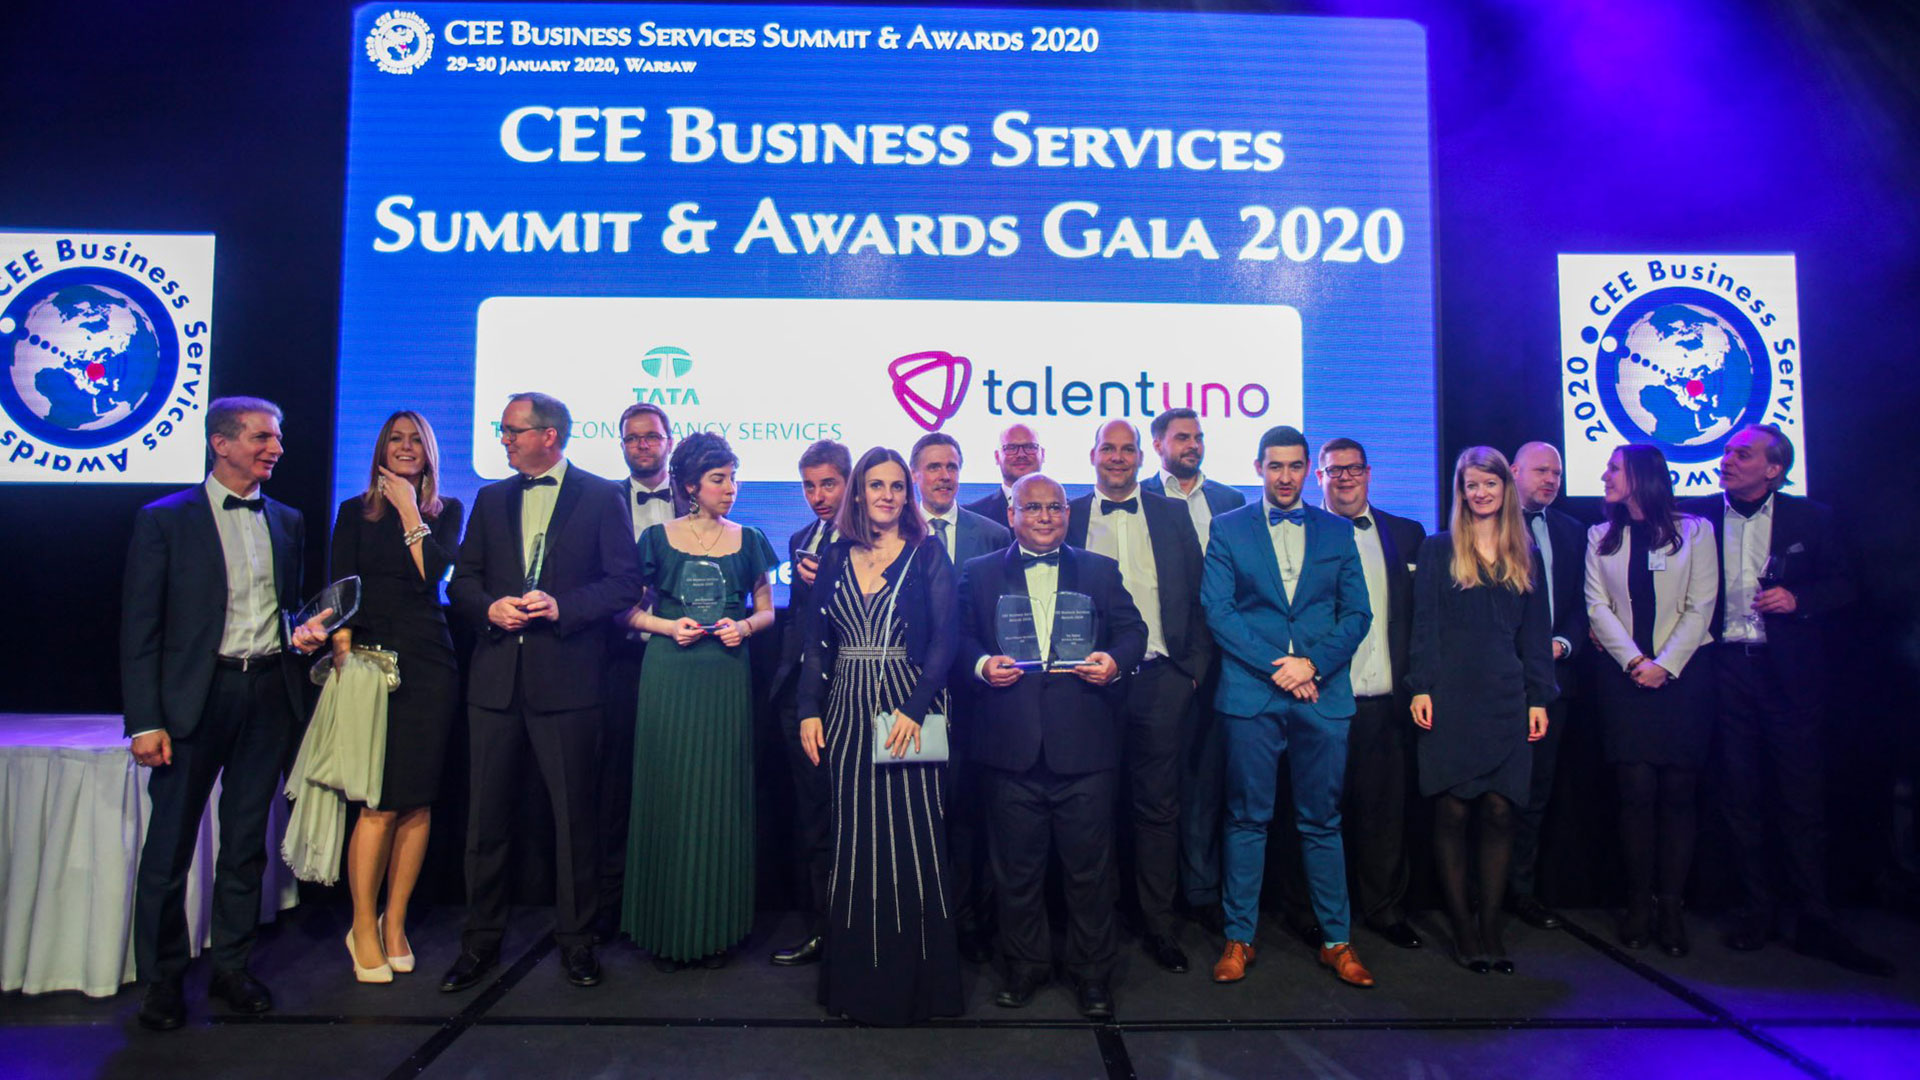 Hungarian Business Service Centres awarded in six categories at CEE Business Services Summit 2020